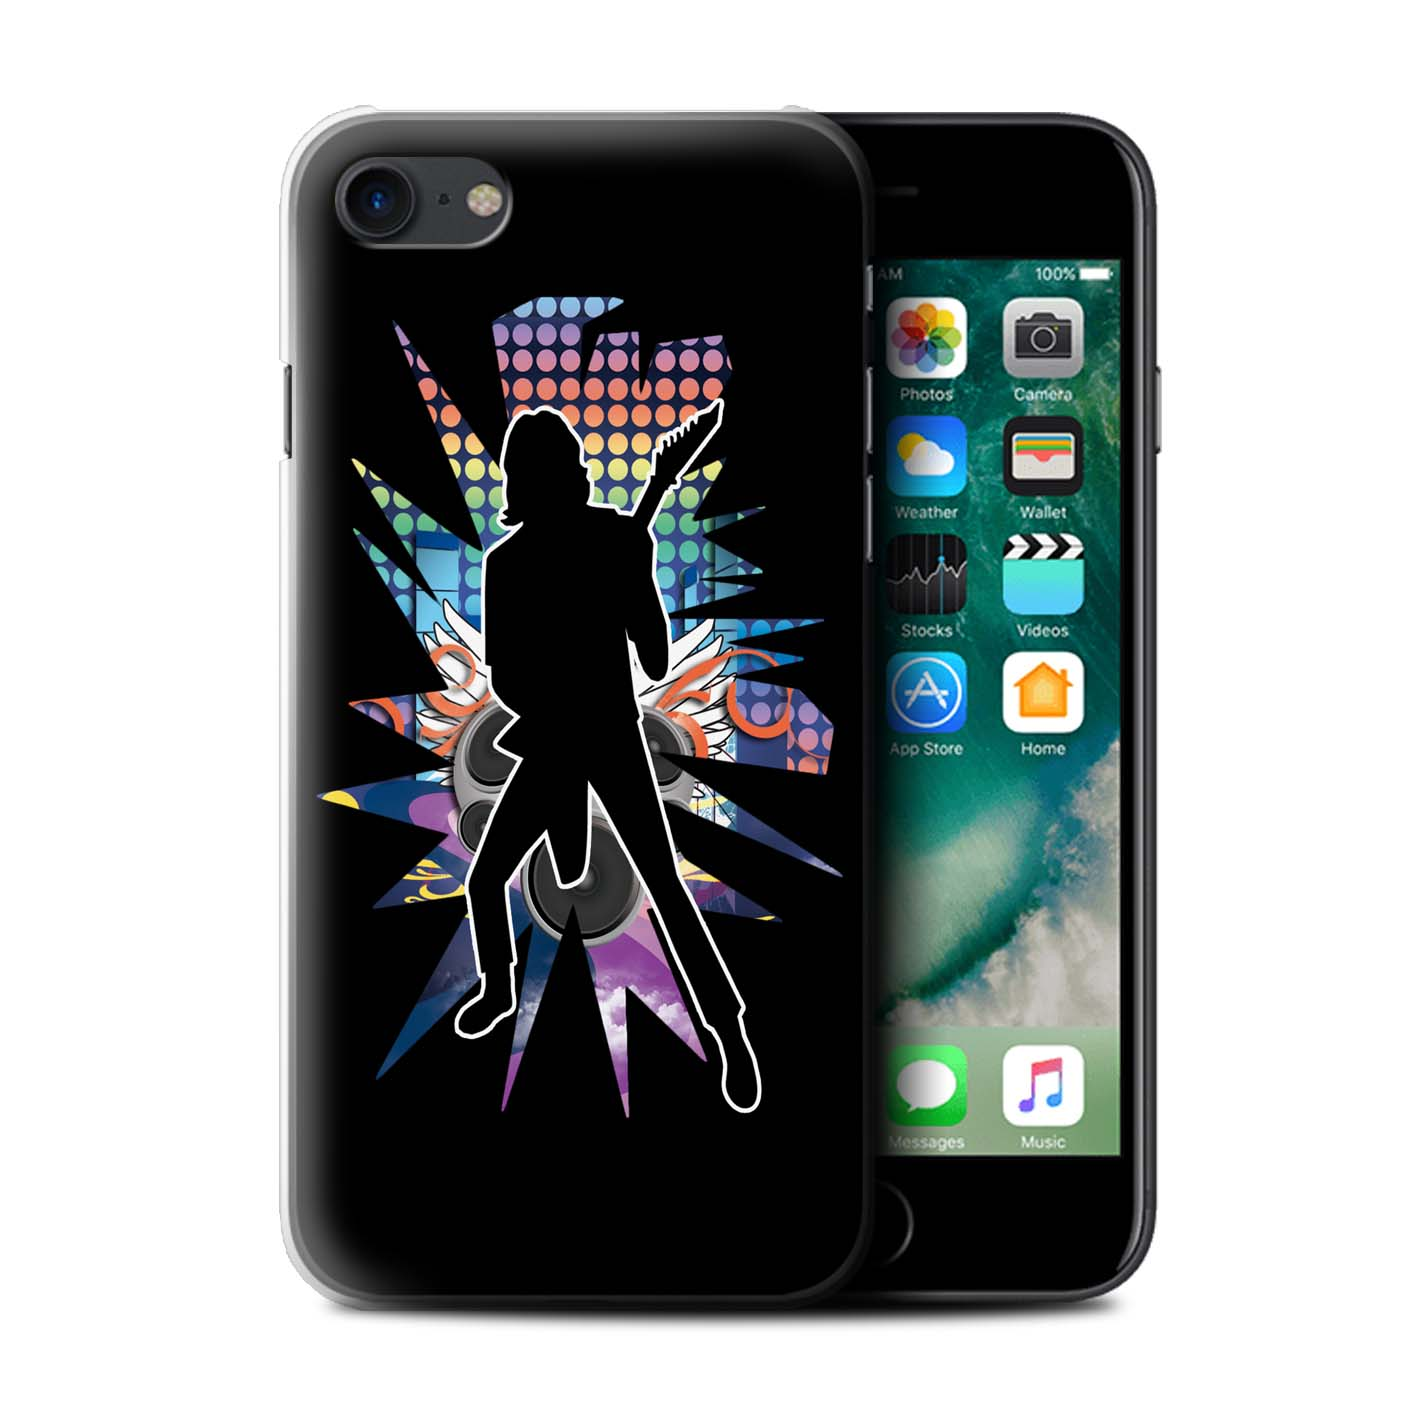 Coque-Etui-Housse-de-Stuff4-pour-Apple-iPhone-7-Rock-Star-Pose